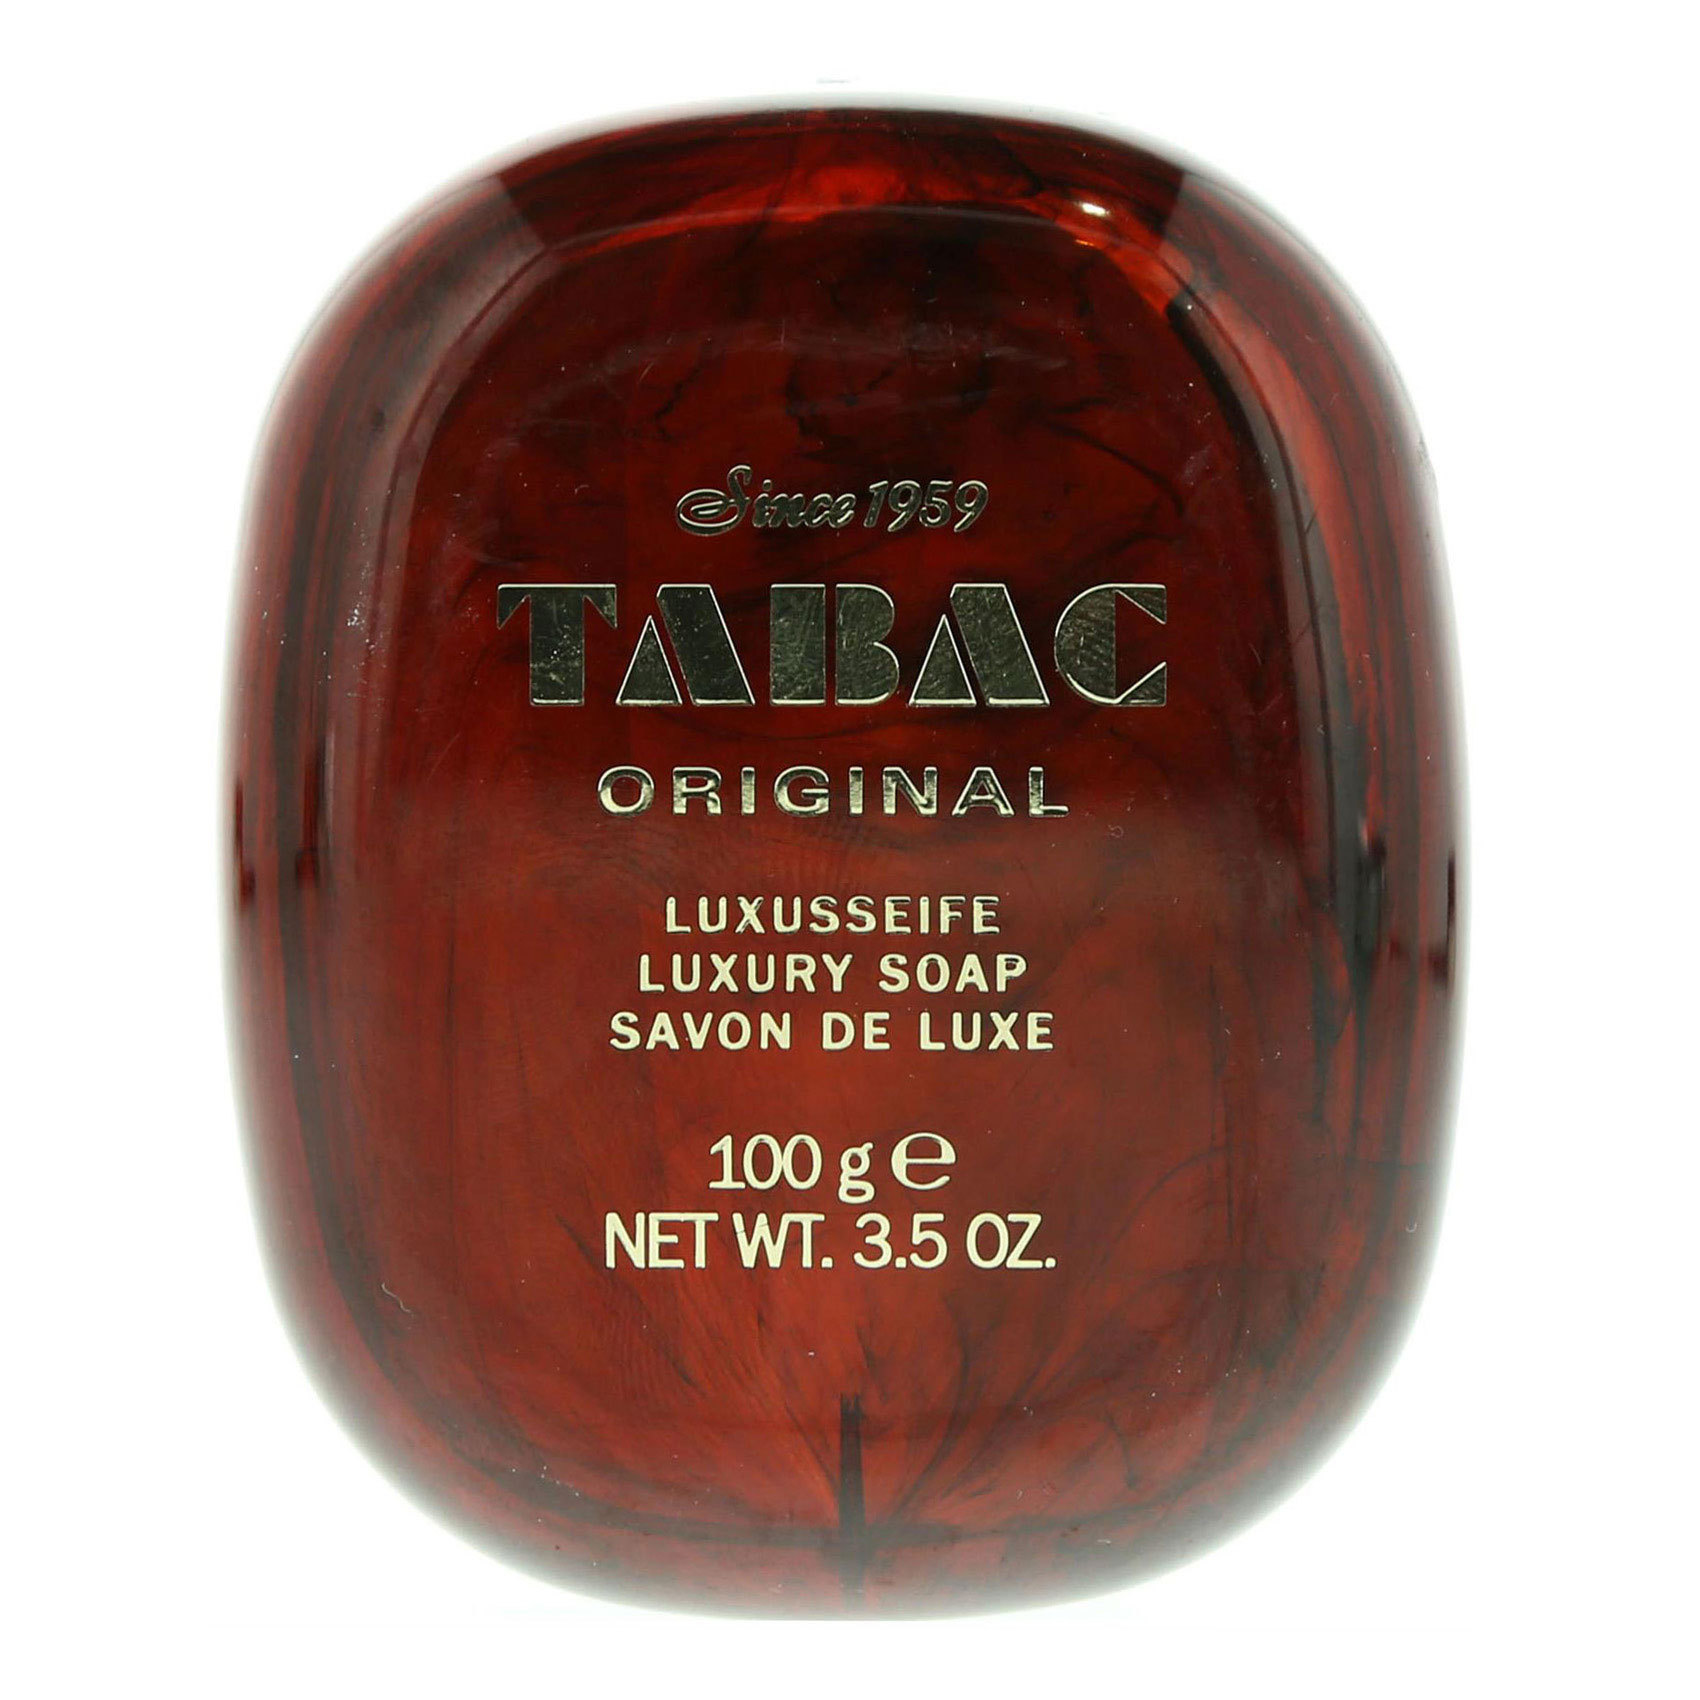 TABAC ORIGINAL LUXURY SOAP 100GMS